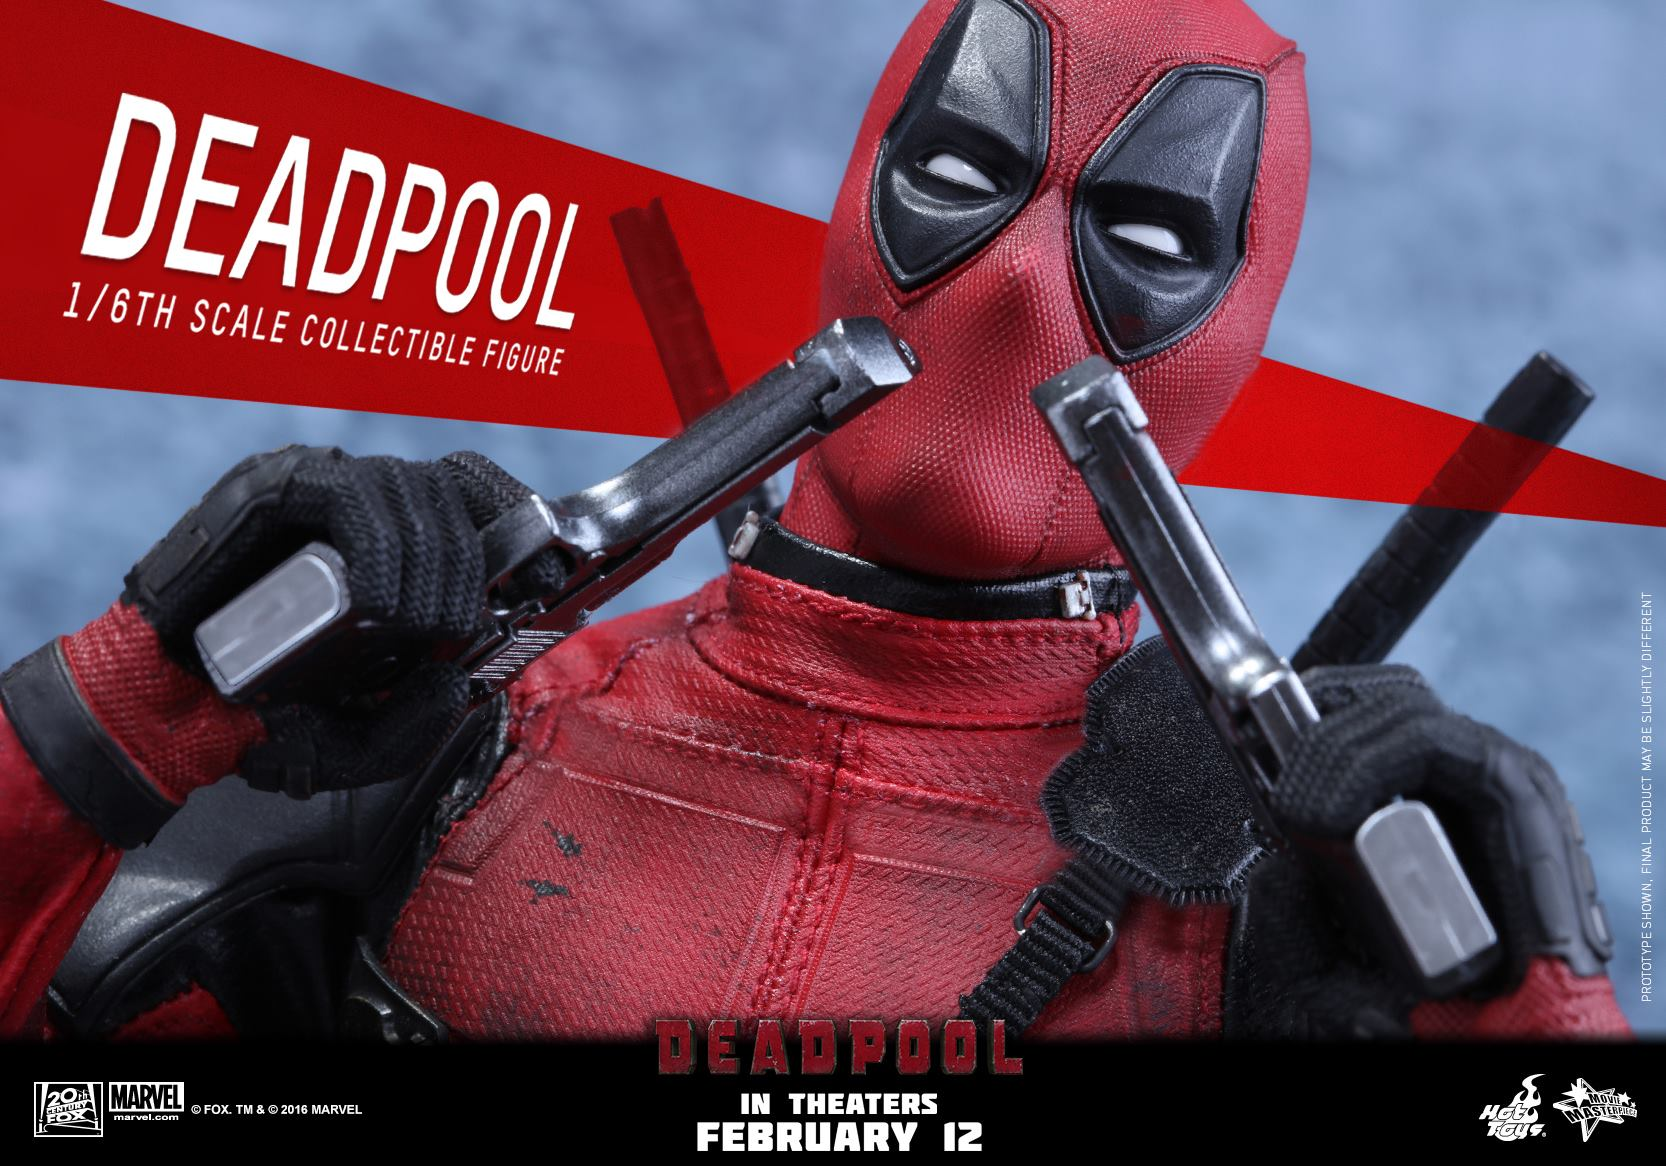 Hot toys deadpool sixth scale figure up for order for Deadpool show